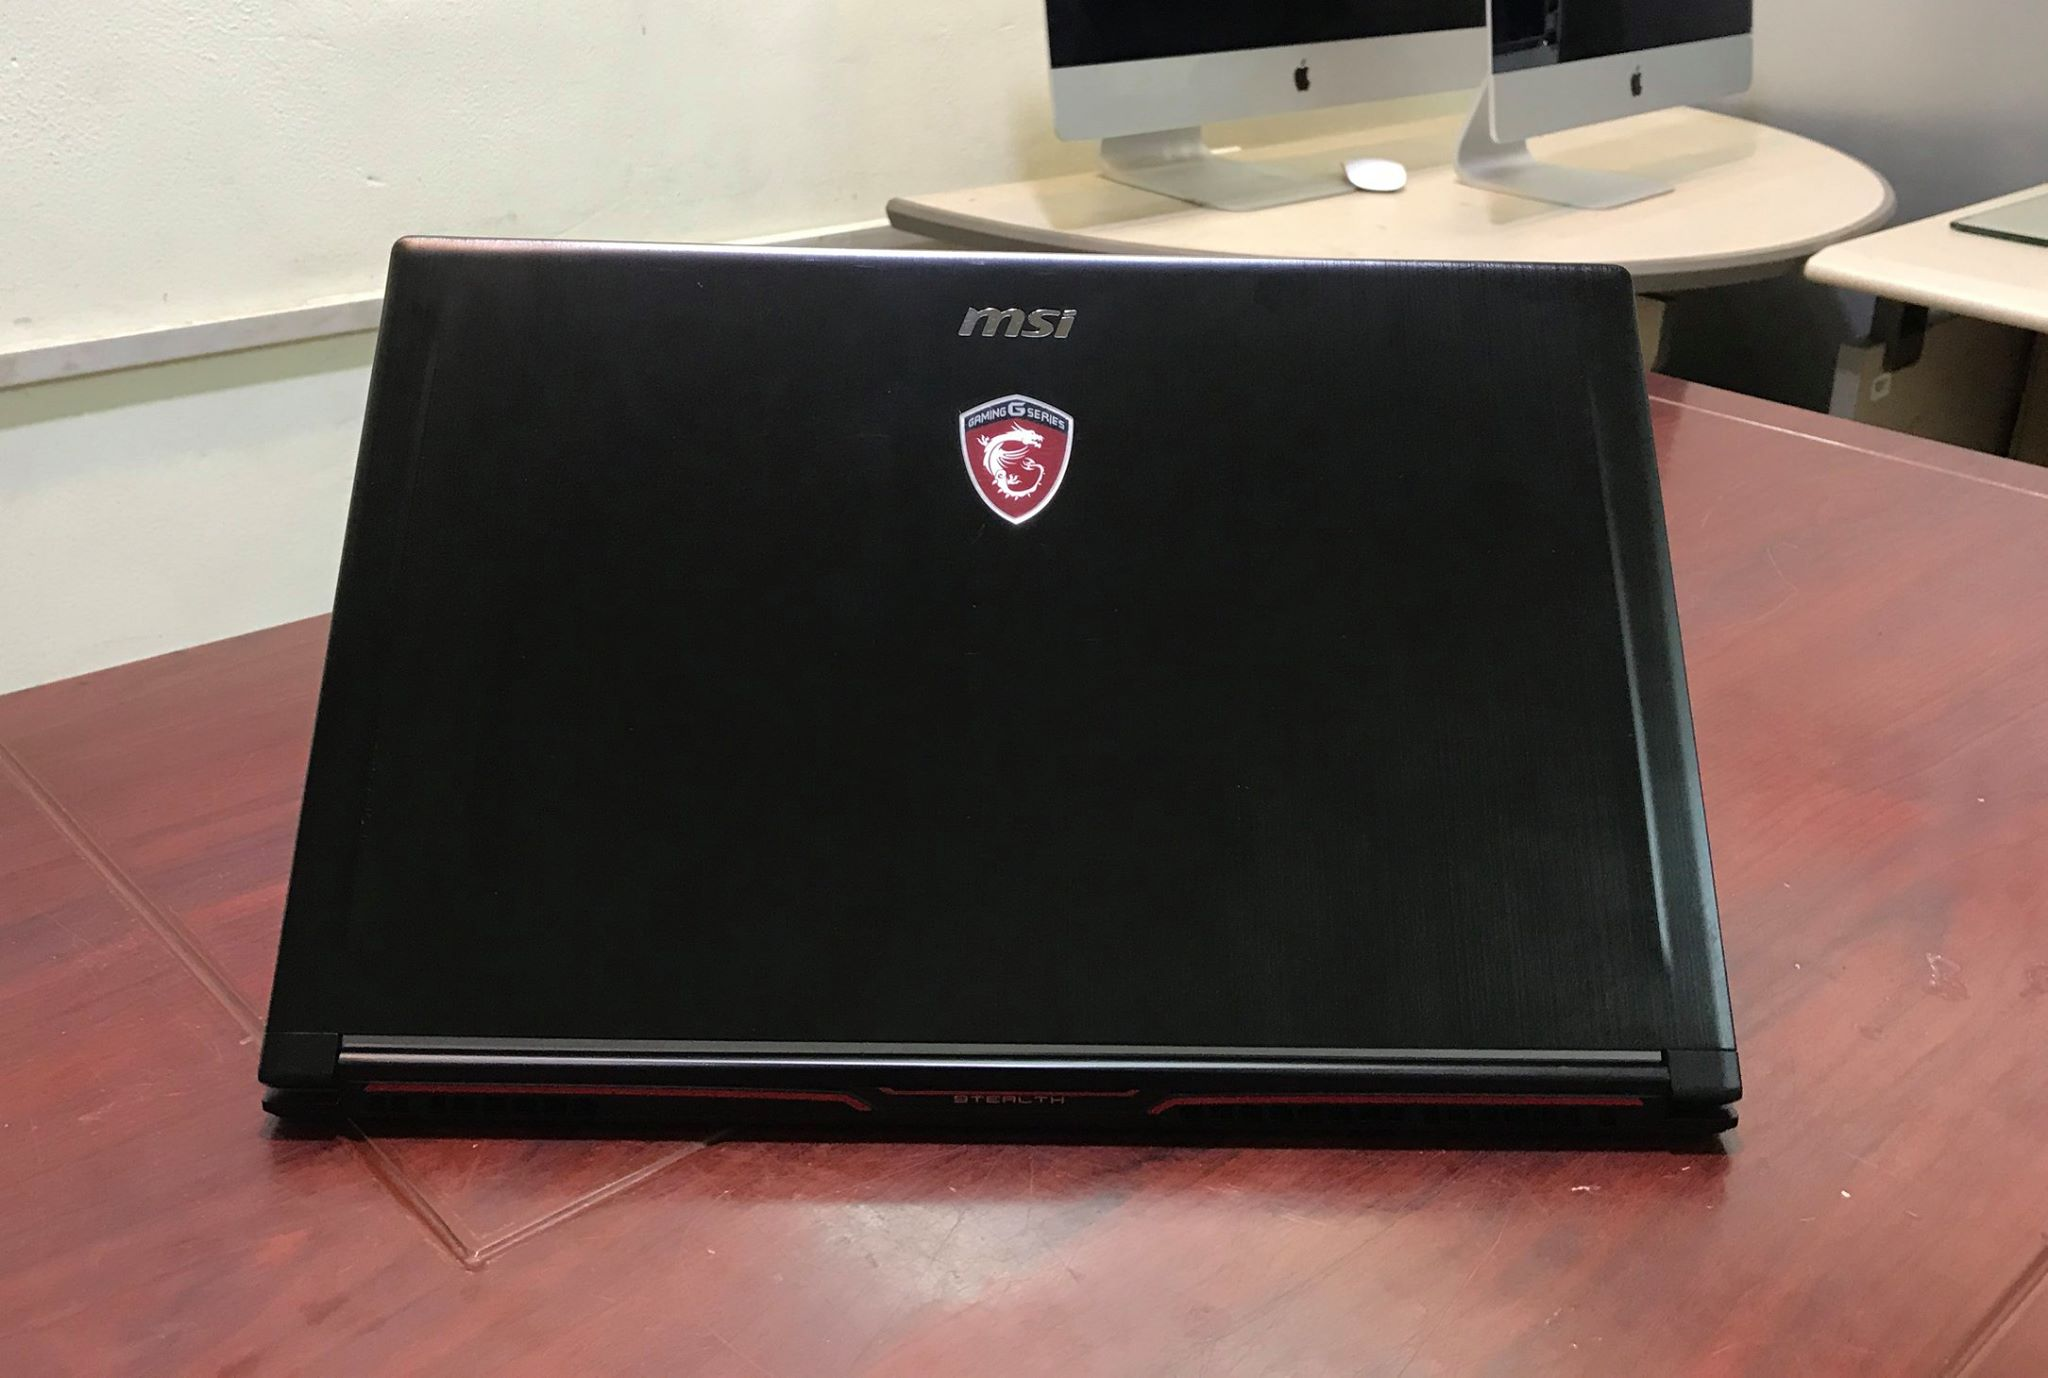 Laptop MSI GS63VR Stealth Pro-7.jpg